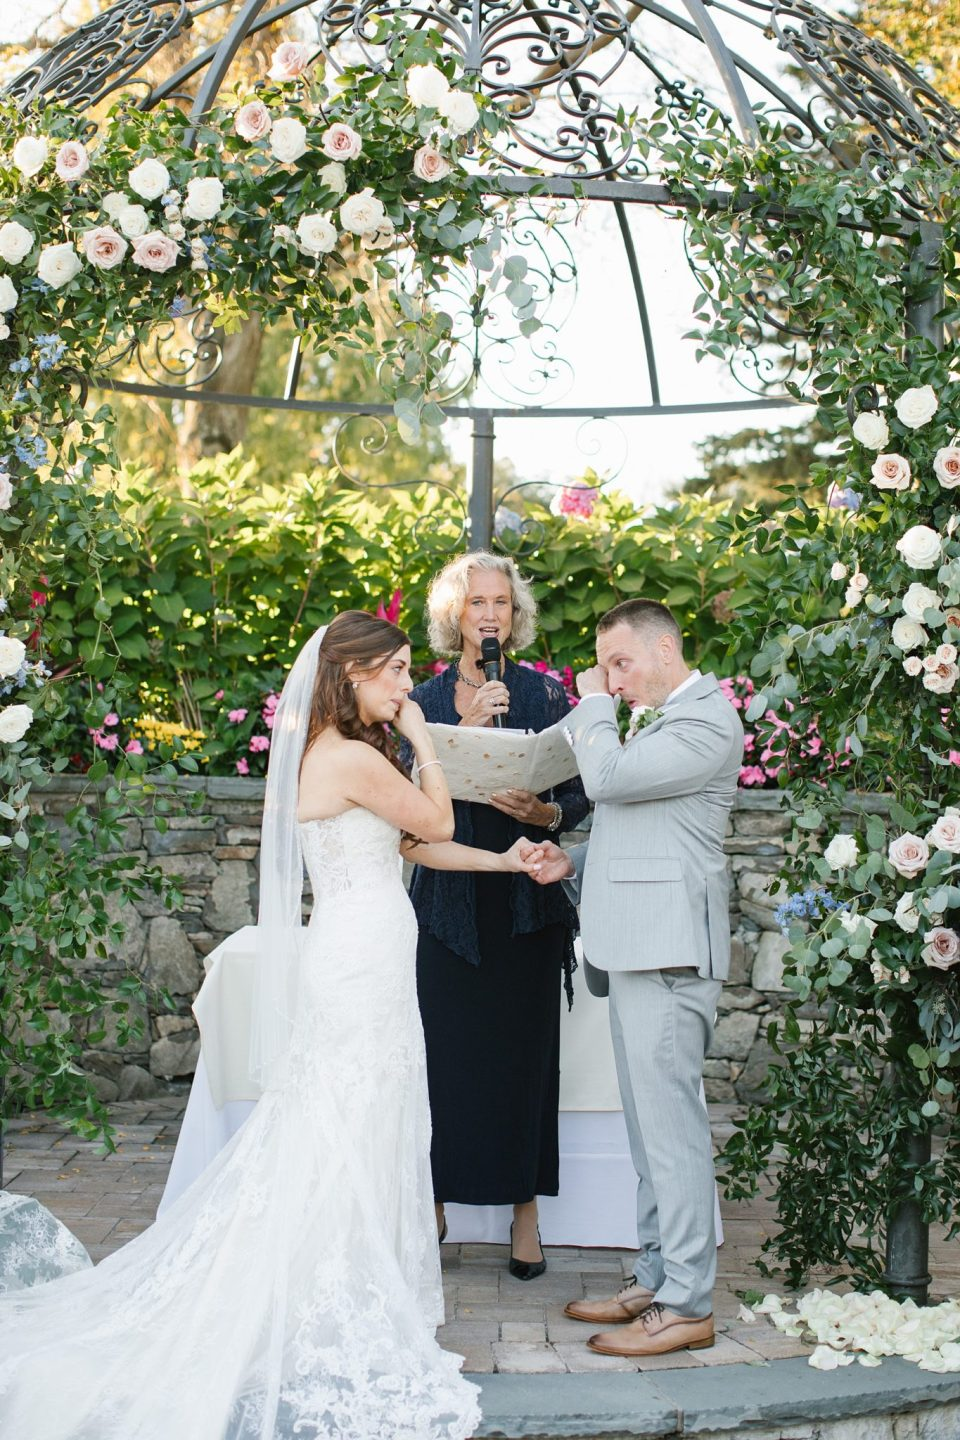 emotional West Hills Country Club wedding ceremony photographed by Ashley Mac Photographs